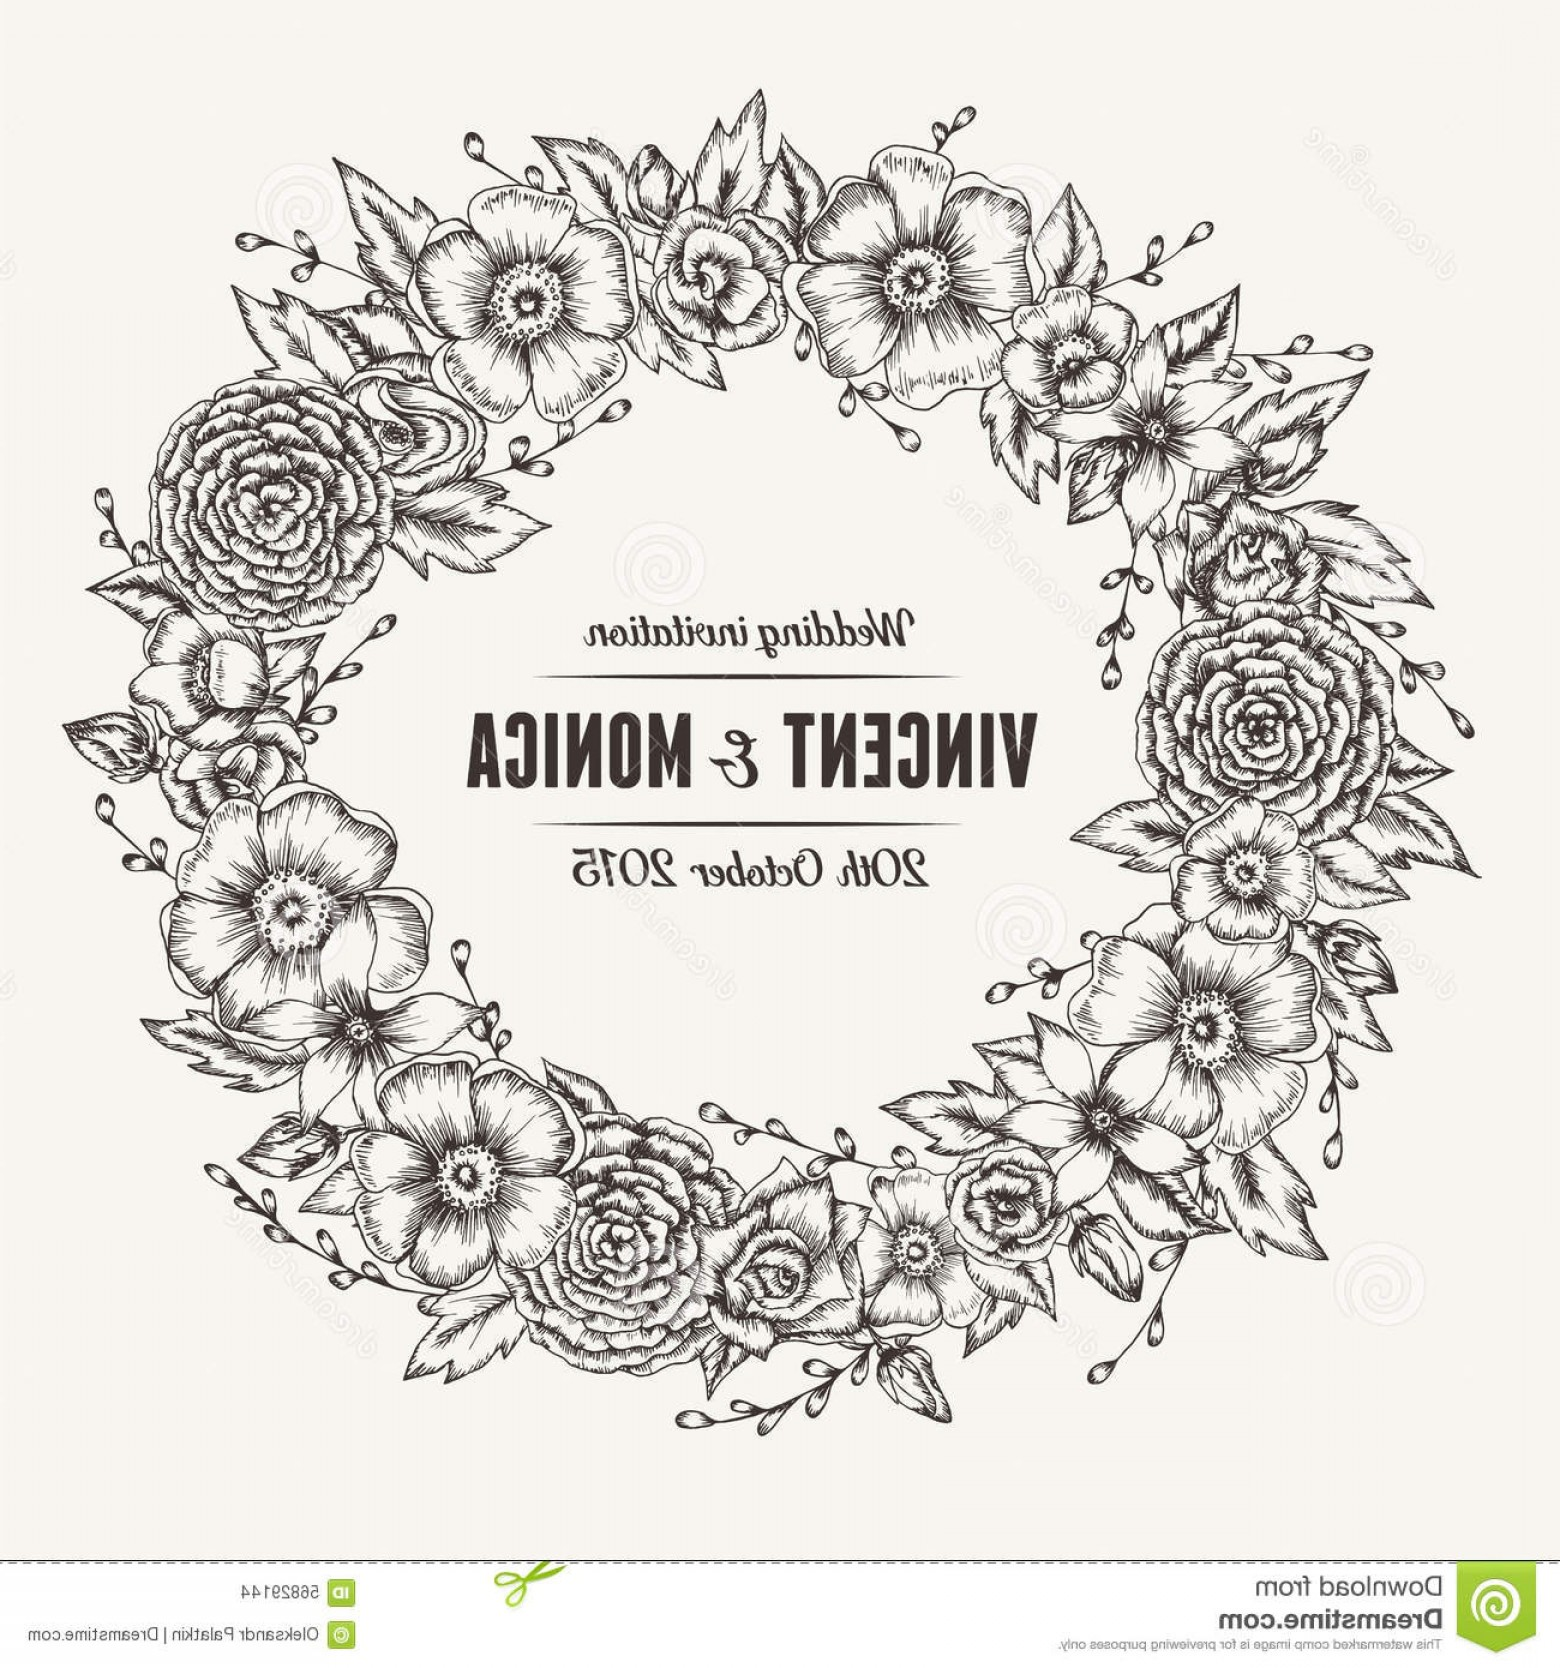 Elegant Wedding Vector Graphics: Stock Illustration Vector Vintage Floral Wedding Invitation Hand Drawn Flower Wreath Image